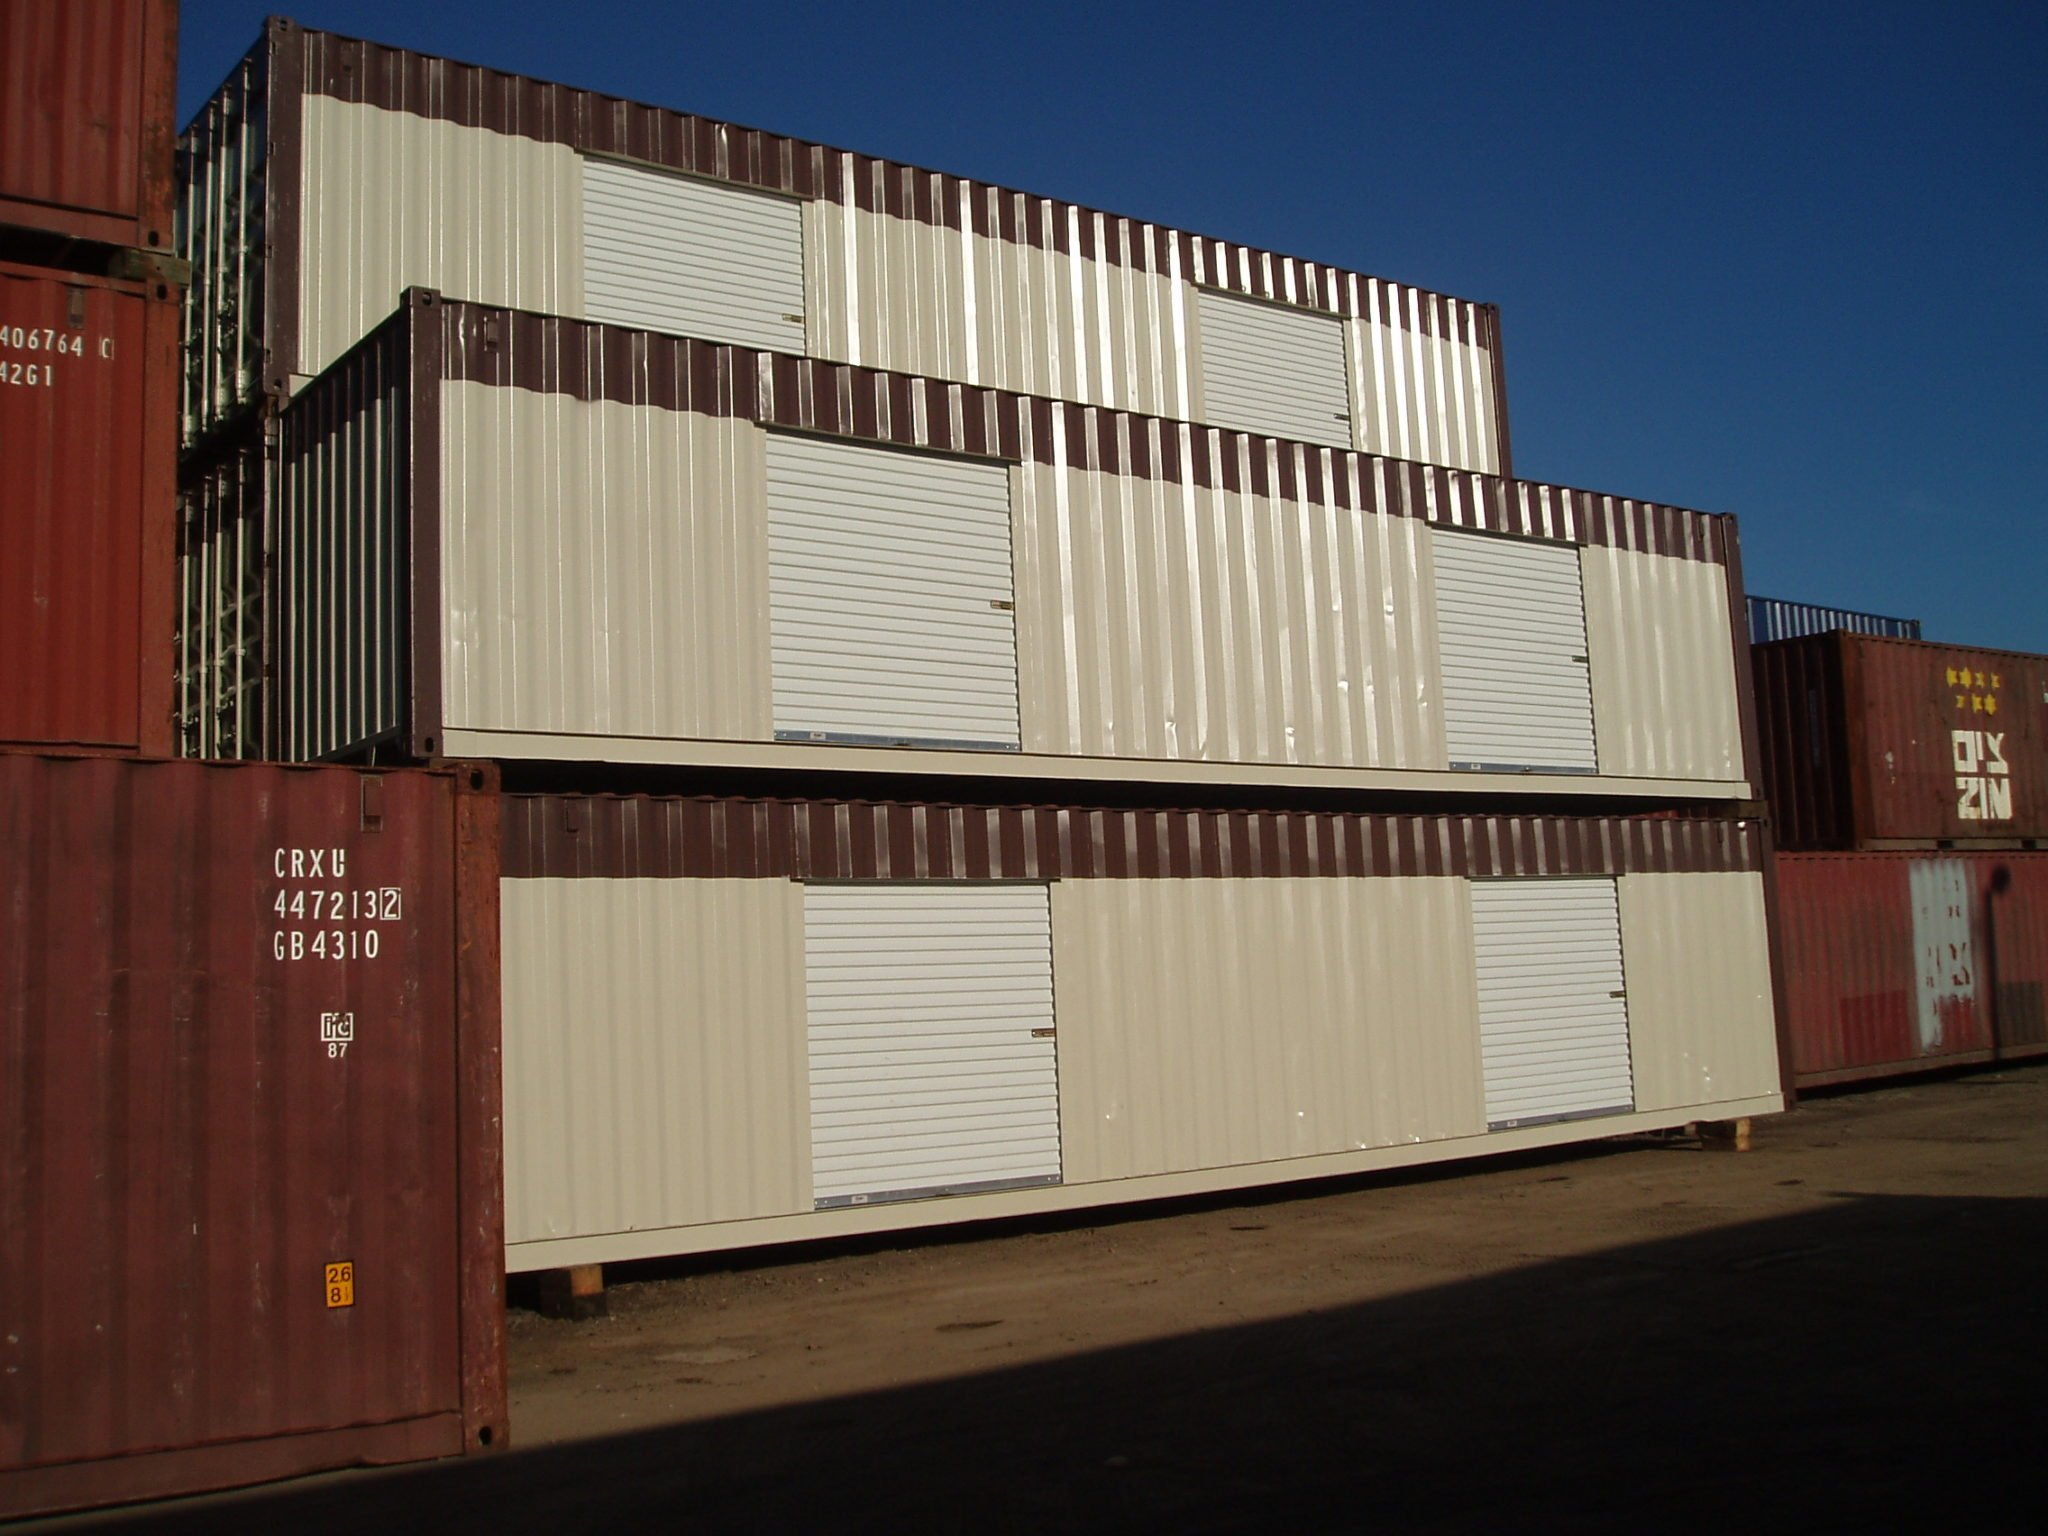 A American Container's Double Roll Up Doors for Hertz